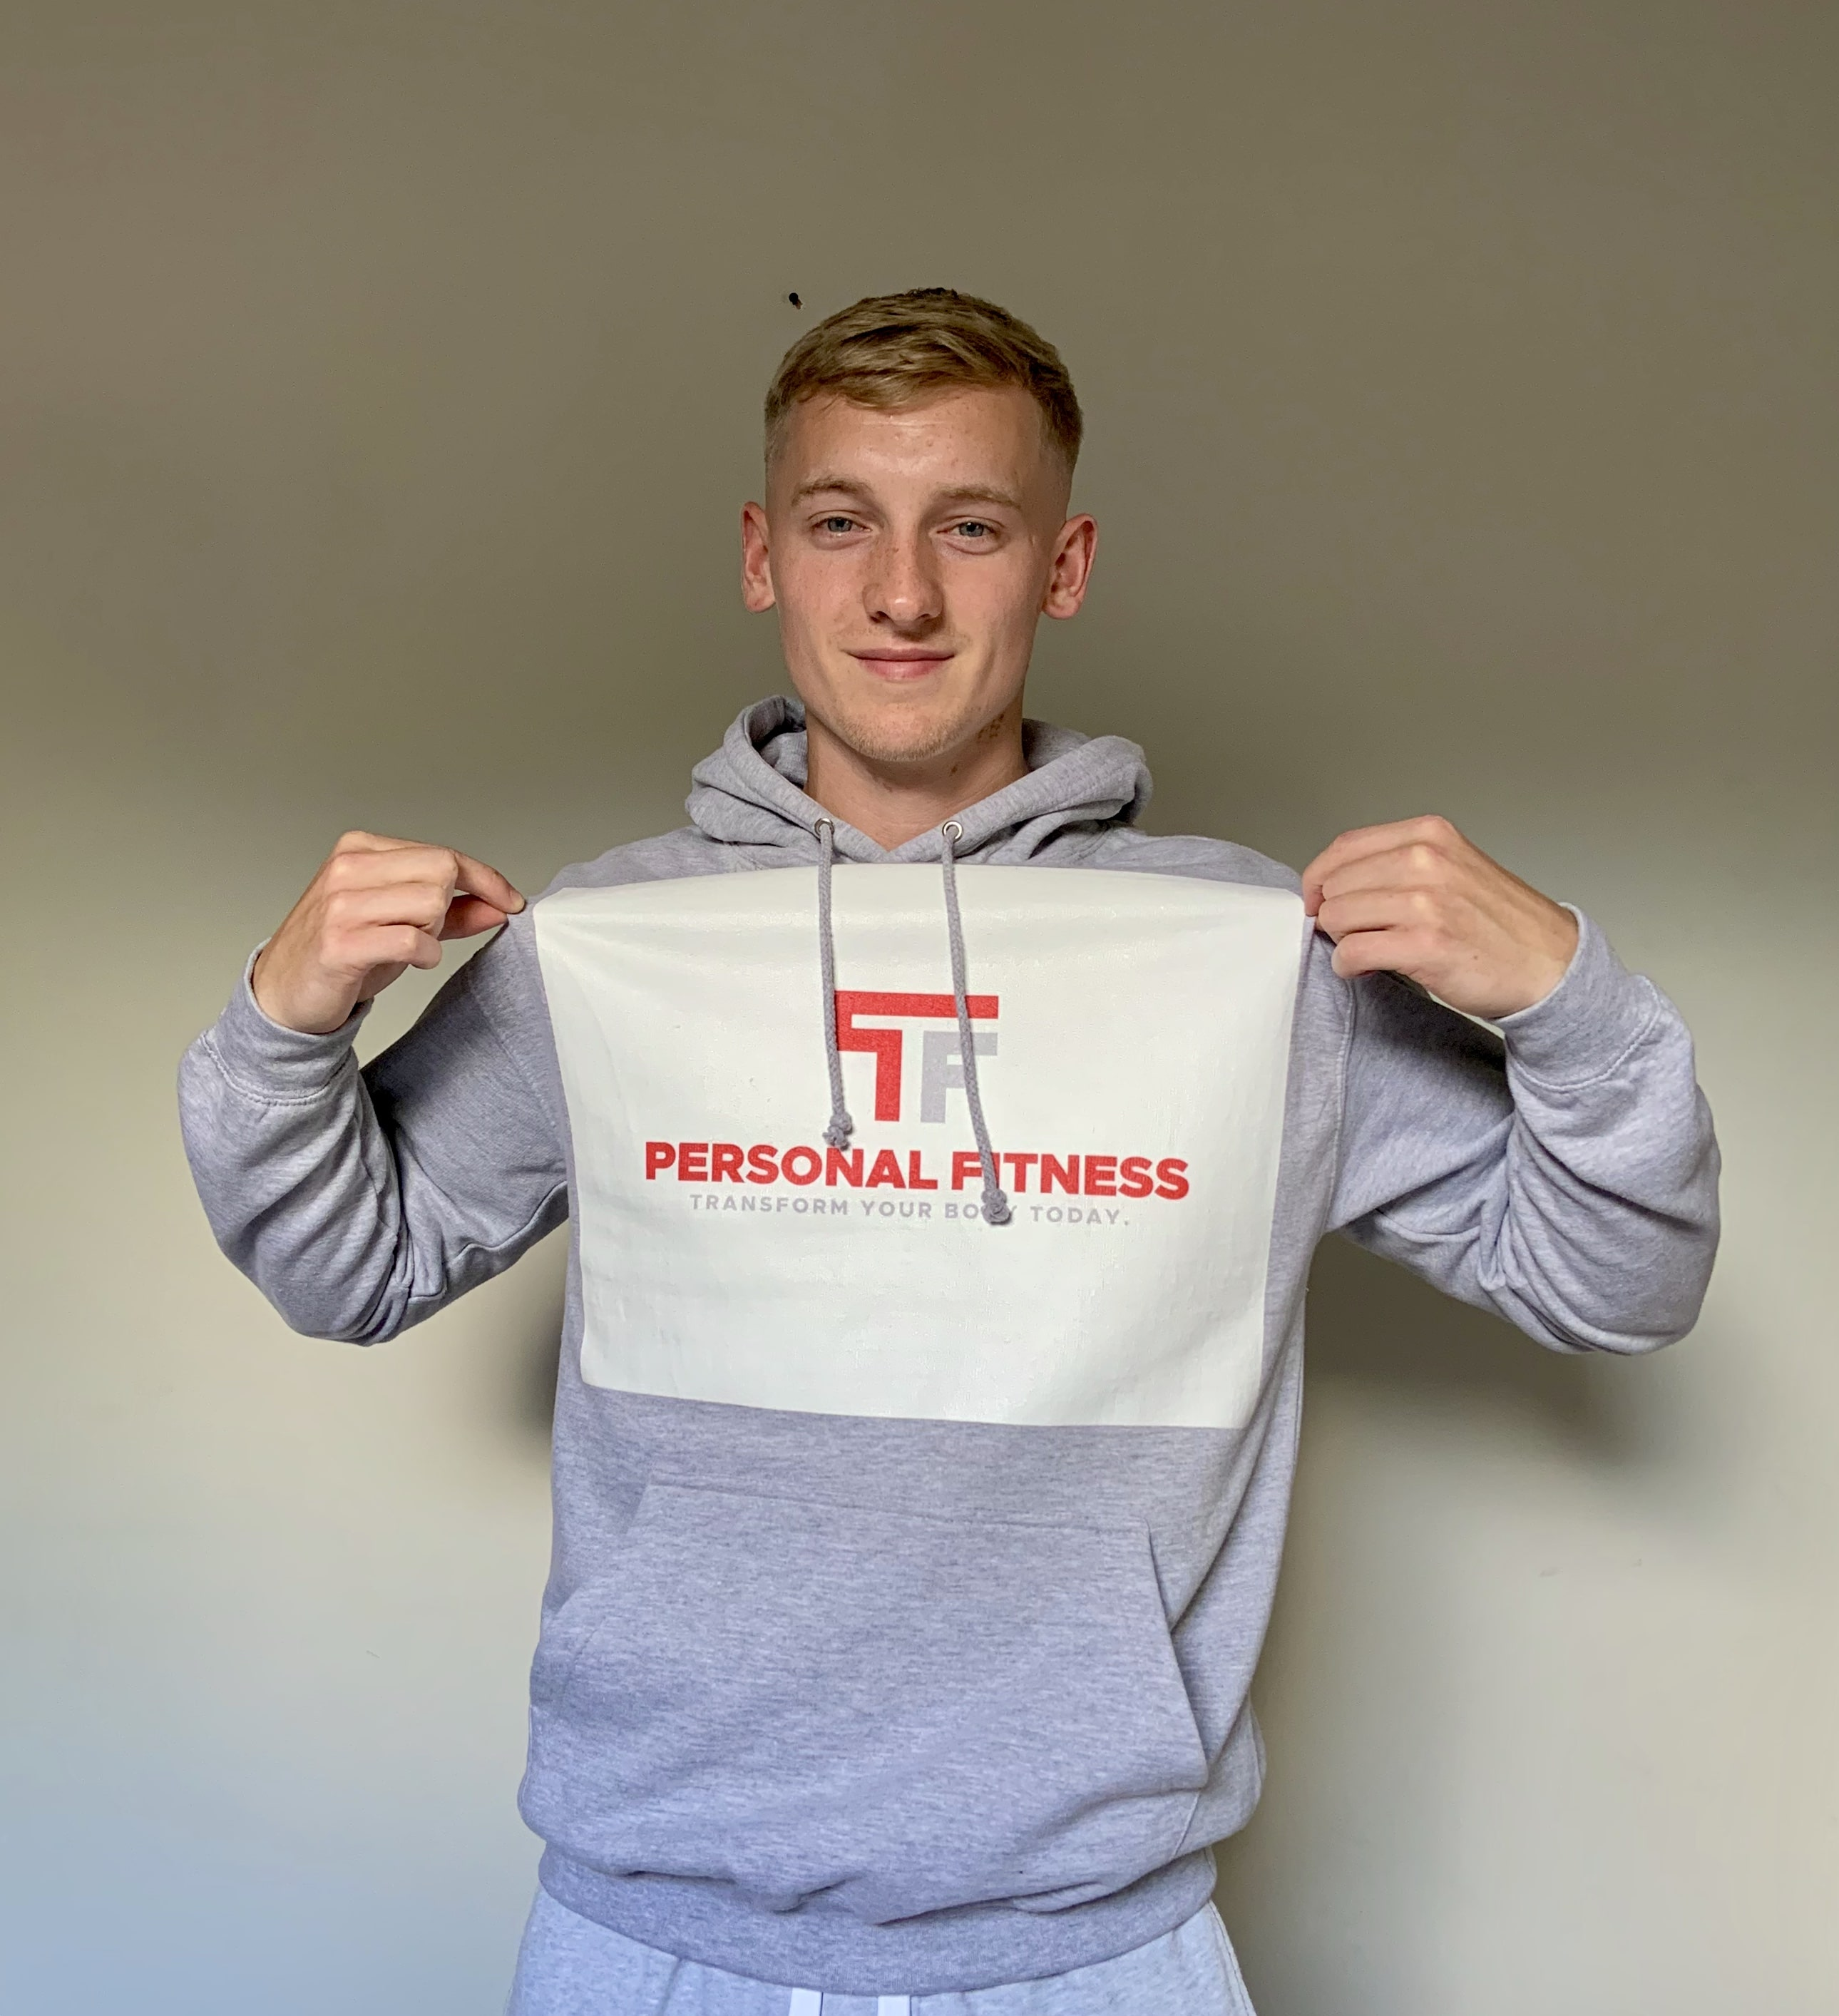 Tom Frith Personal Fitness plans